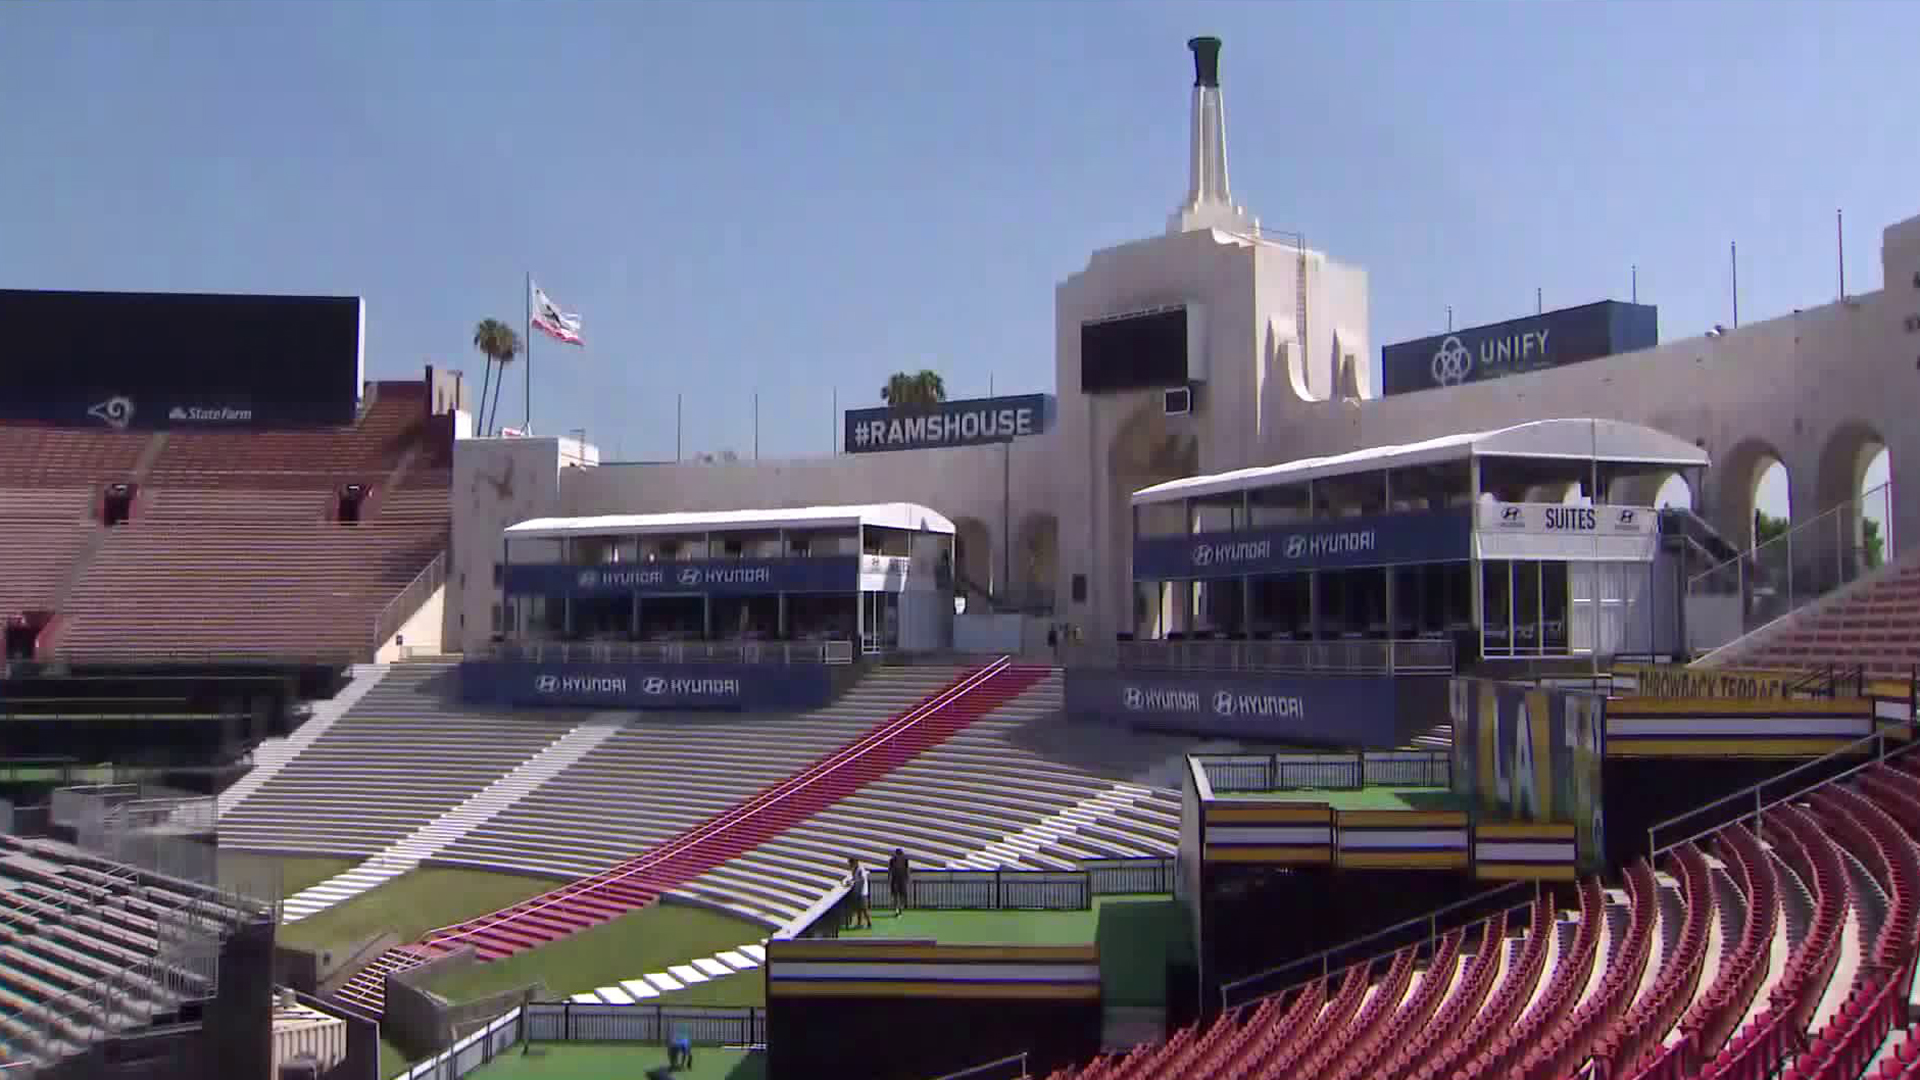 Renovations were under way at the L.A. Memorial Coliseum on Aug. 15, 2018. (Credit: KTLA)